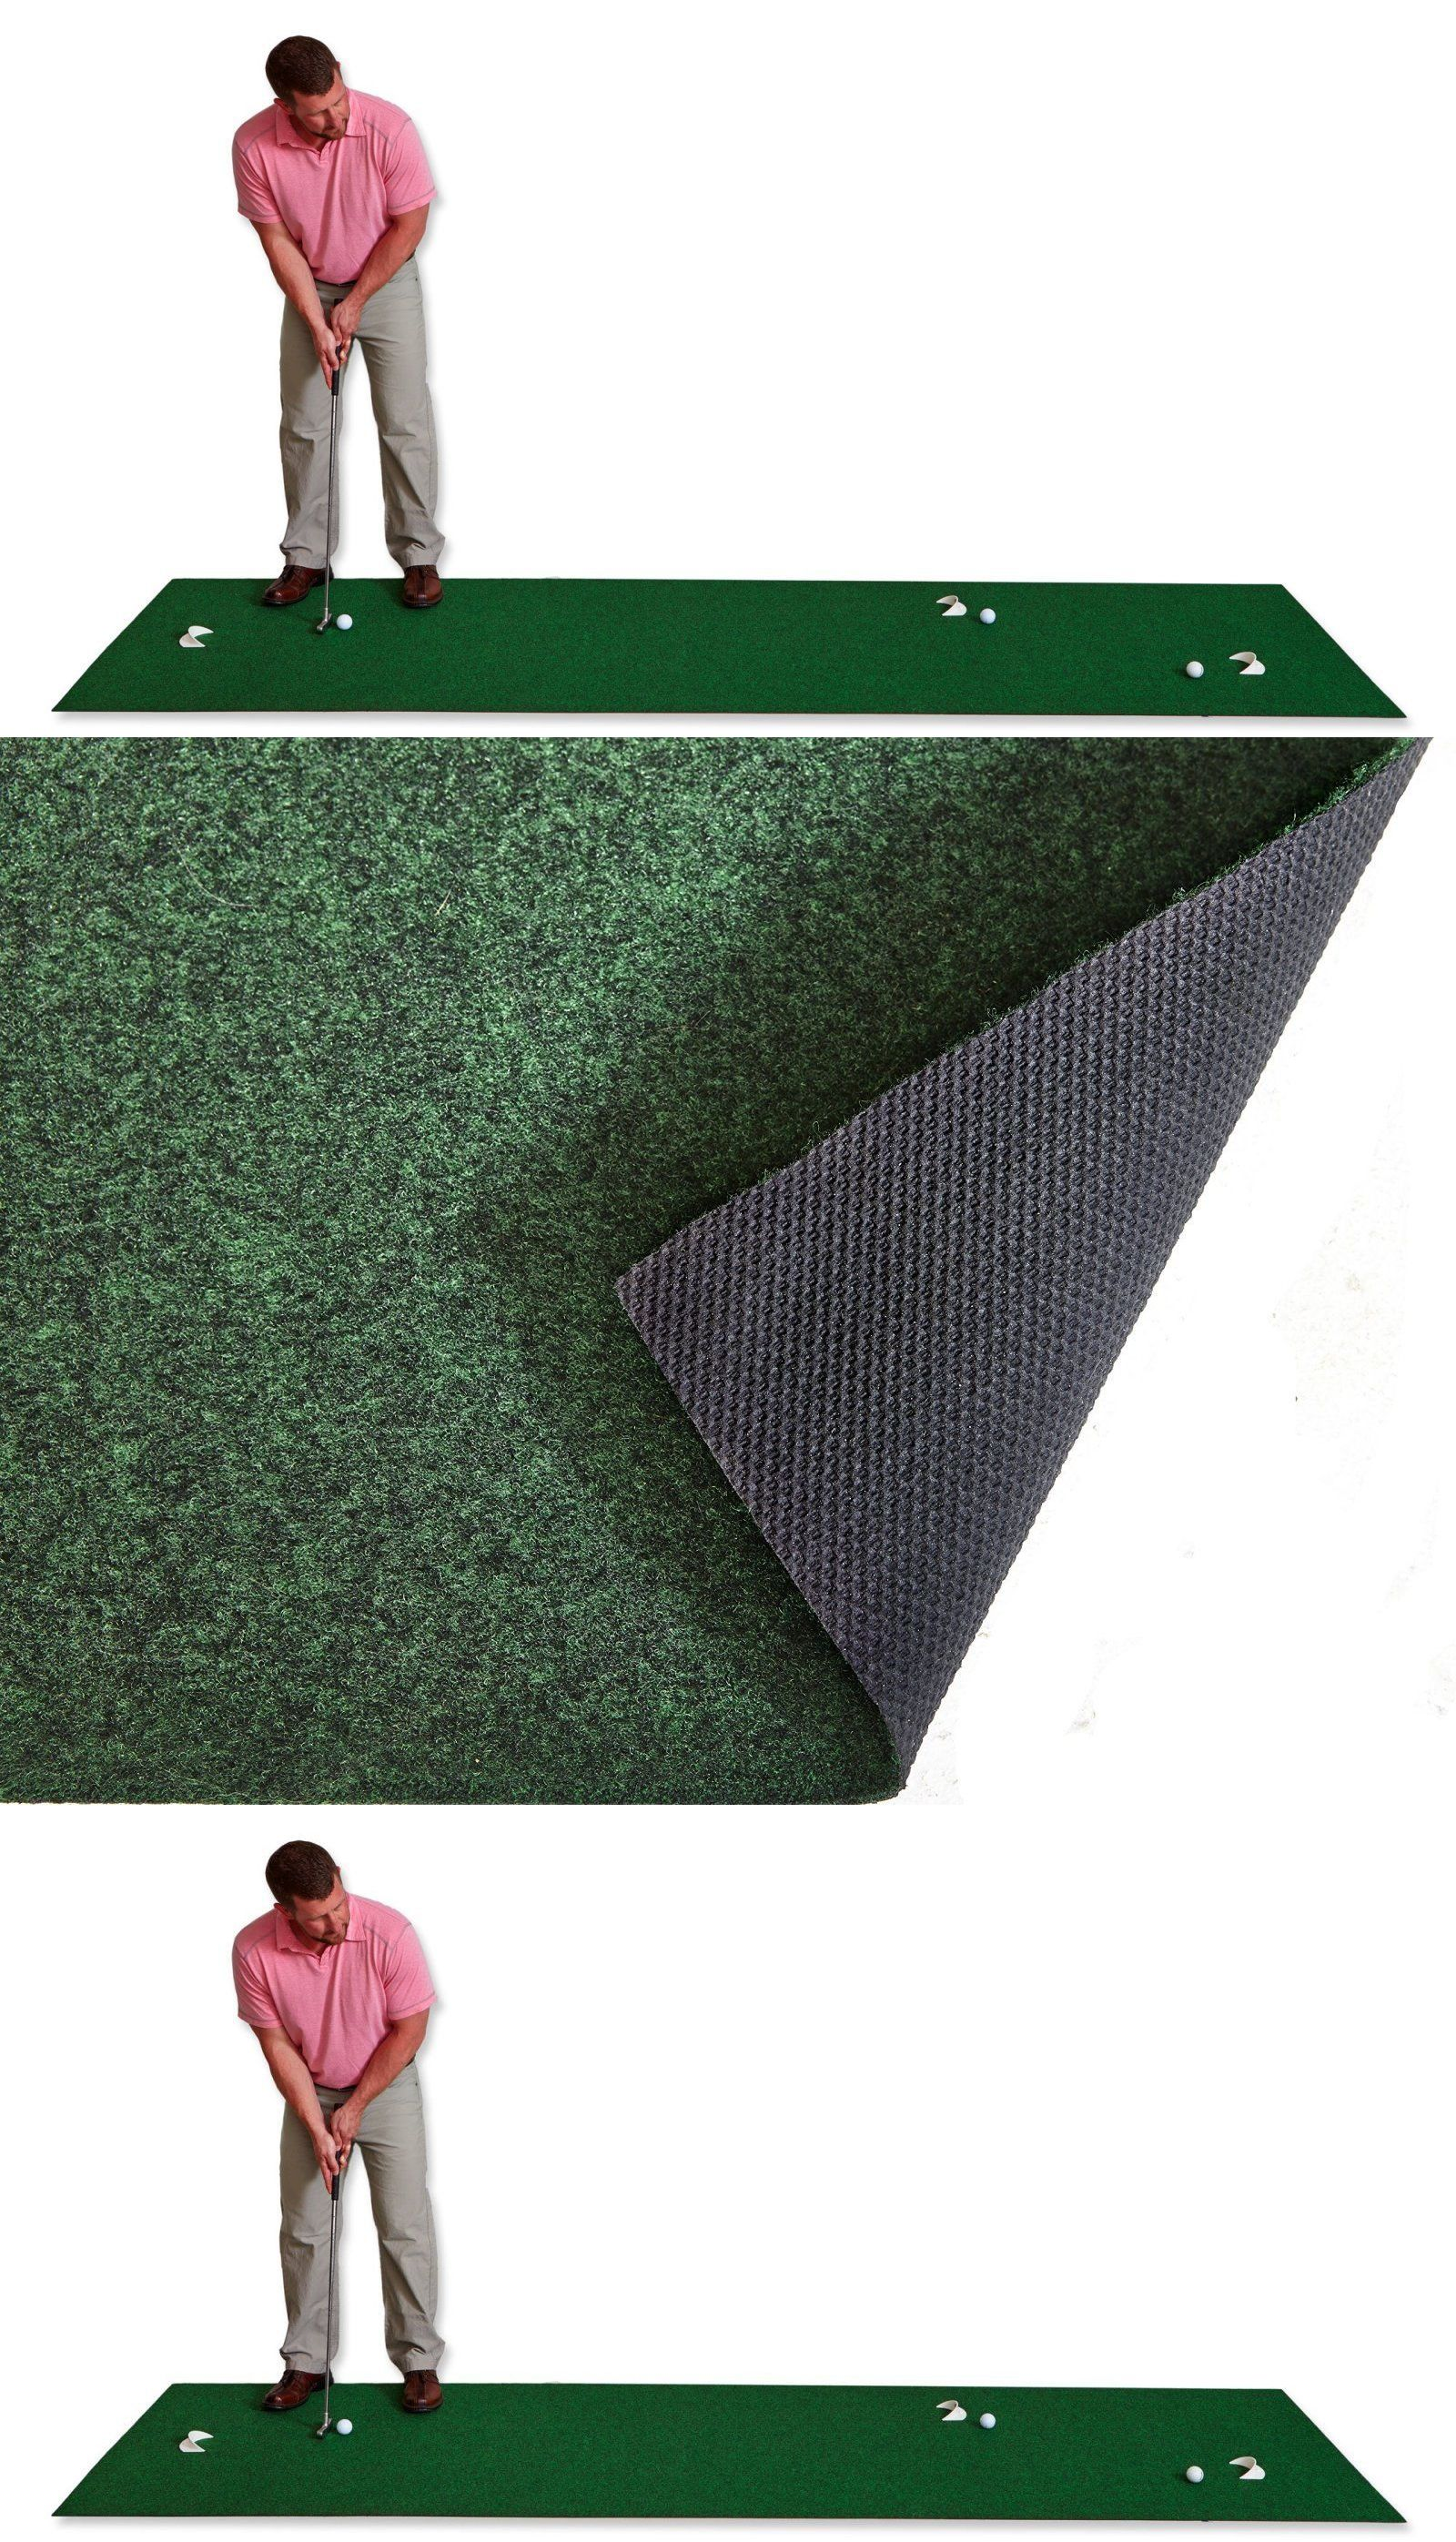 Putting Greens And Aids 36234: Golf Practice Green Mat Backyard Outdoor  Indoor Putting Turf Training